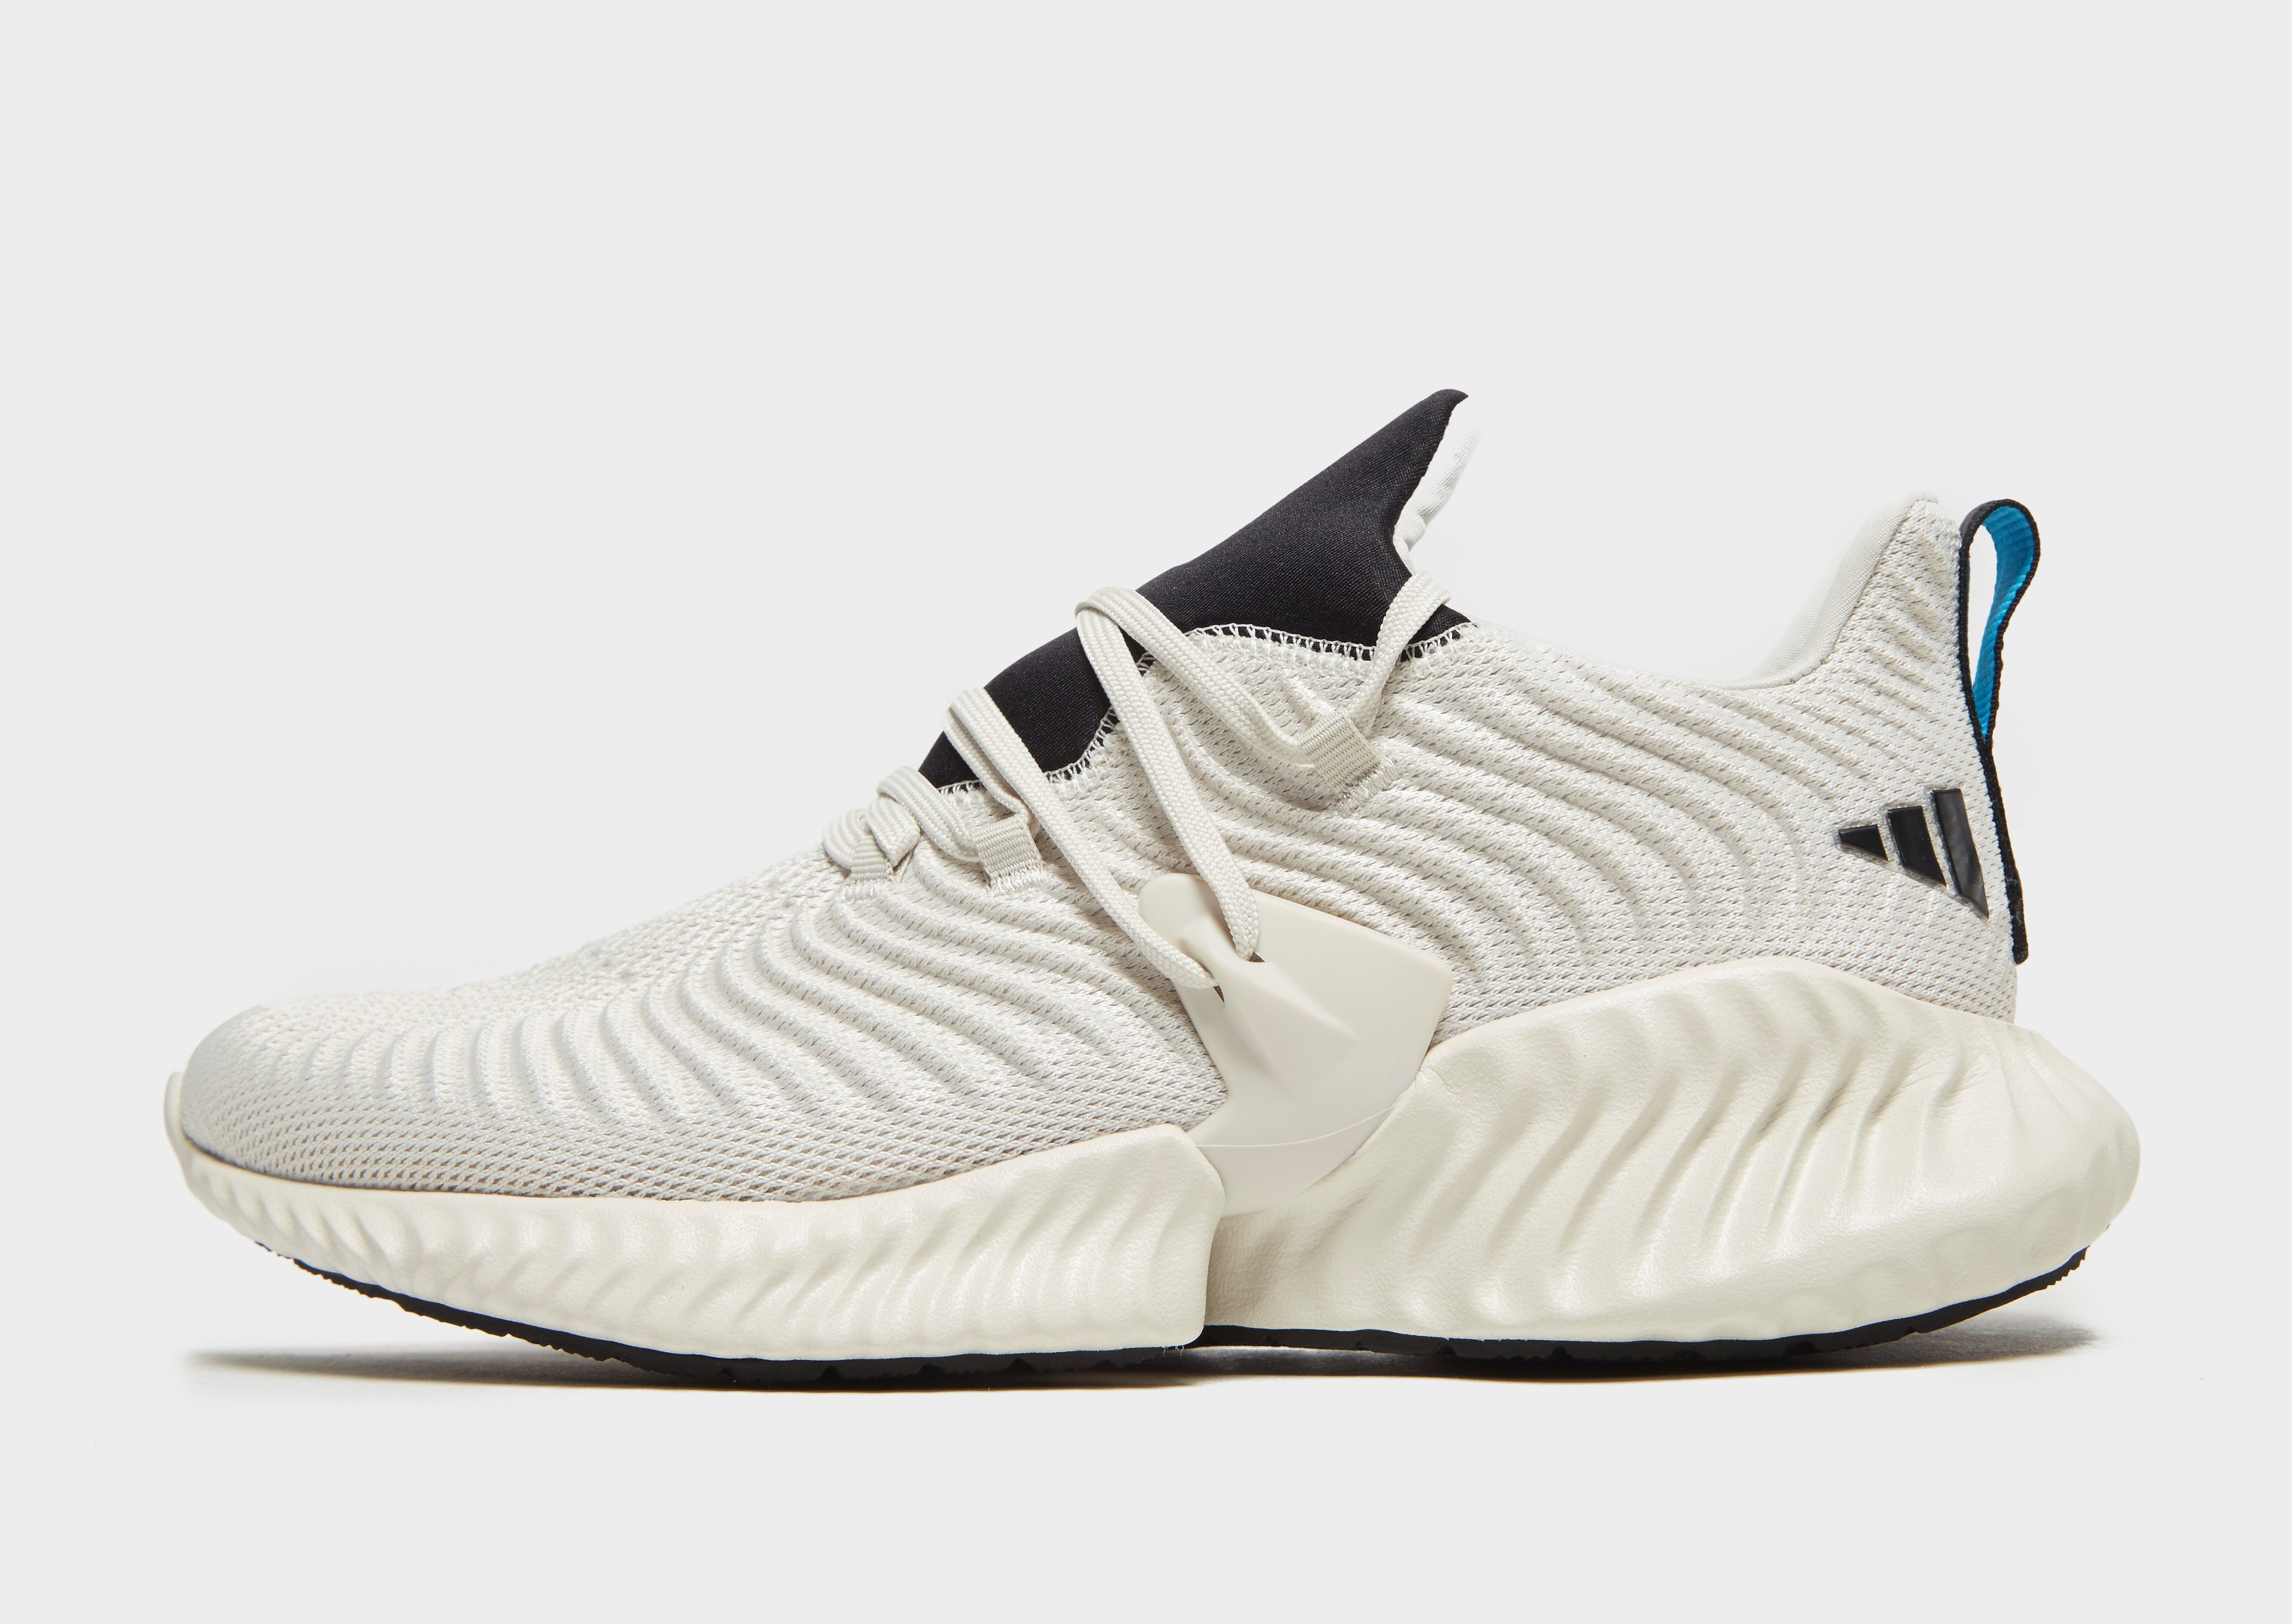 new arrival 2735a fa686 adidas Alpha Bounce Instinct  JD Sports